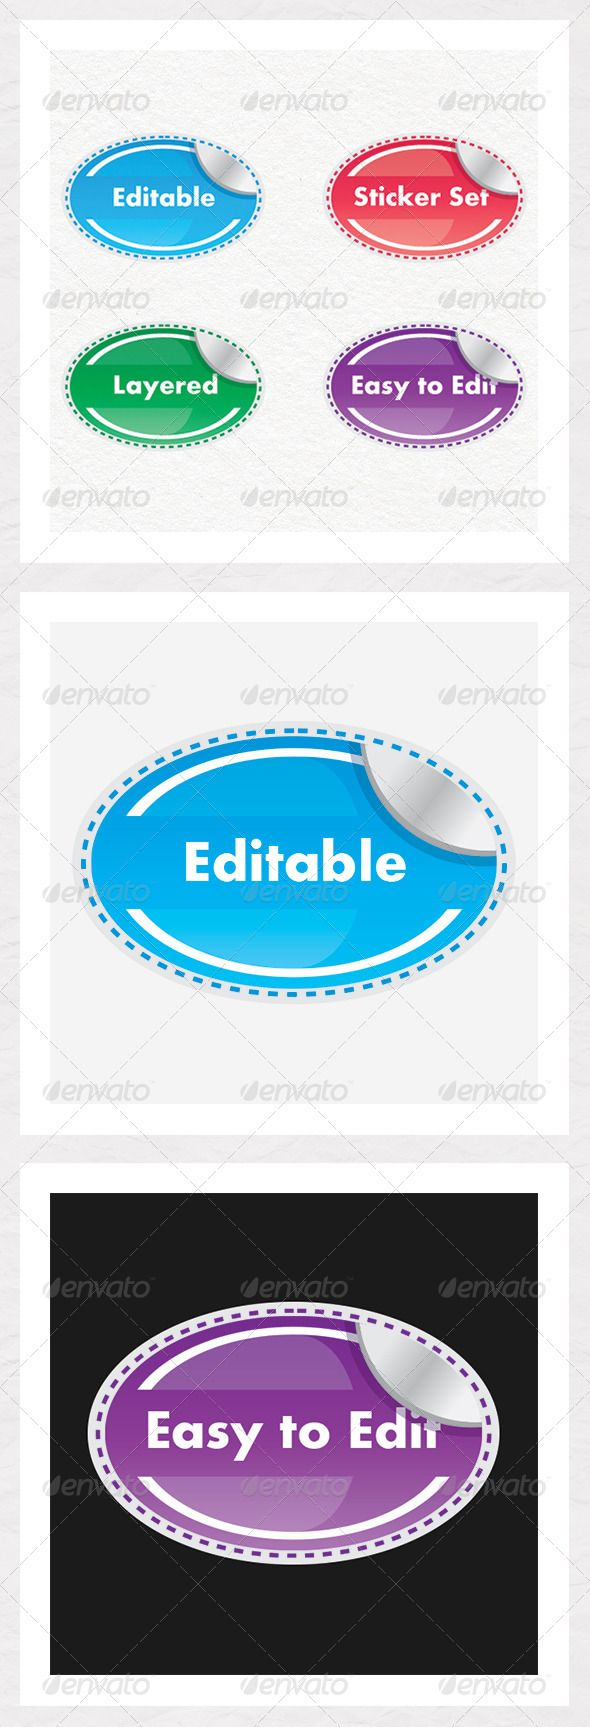 Realistic Graphic DOWNLOAD (.ai, .psd) :: http://vector-graphic.de/pinterest-itmid-1004586232i.html ... Oval Sticker Set ...  blue, color, colorful, colour, colourful, green, internet, label, marker, oval, peel, purple, red, set, stamp, sticker, vector, web, web elements  ... Realistic Photo Graphic Print Obejct Business Web Elements Illustration Design Templates ... DOWNLOAD :: http://vector-graphic.de/pinterest-itmid-1004586232i.html